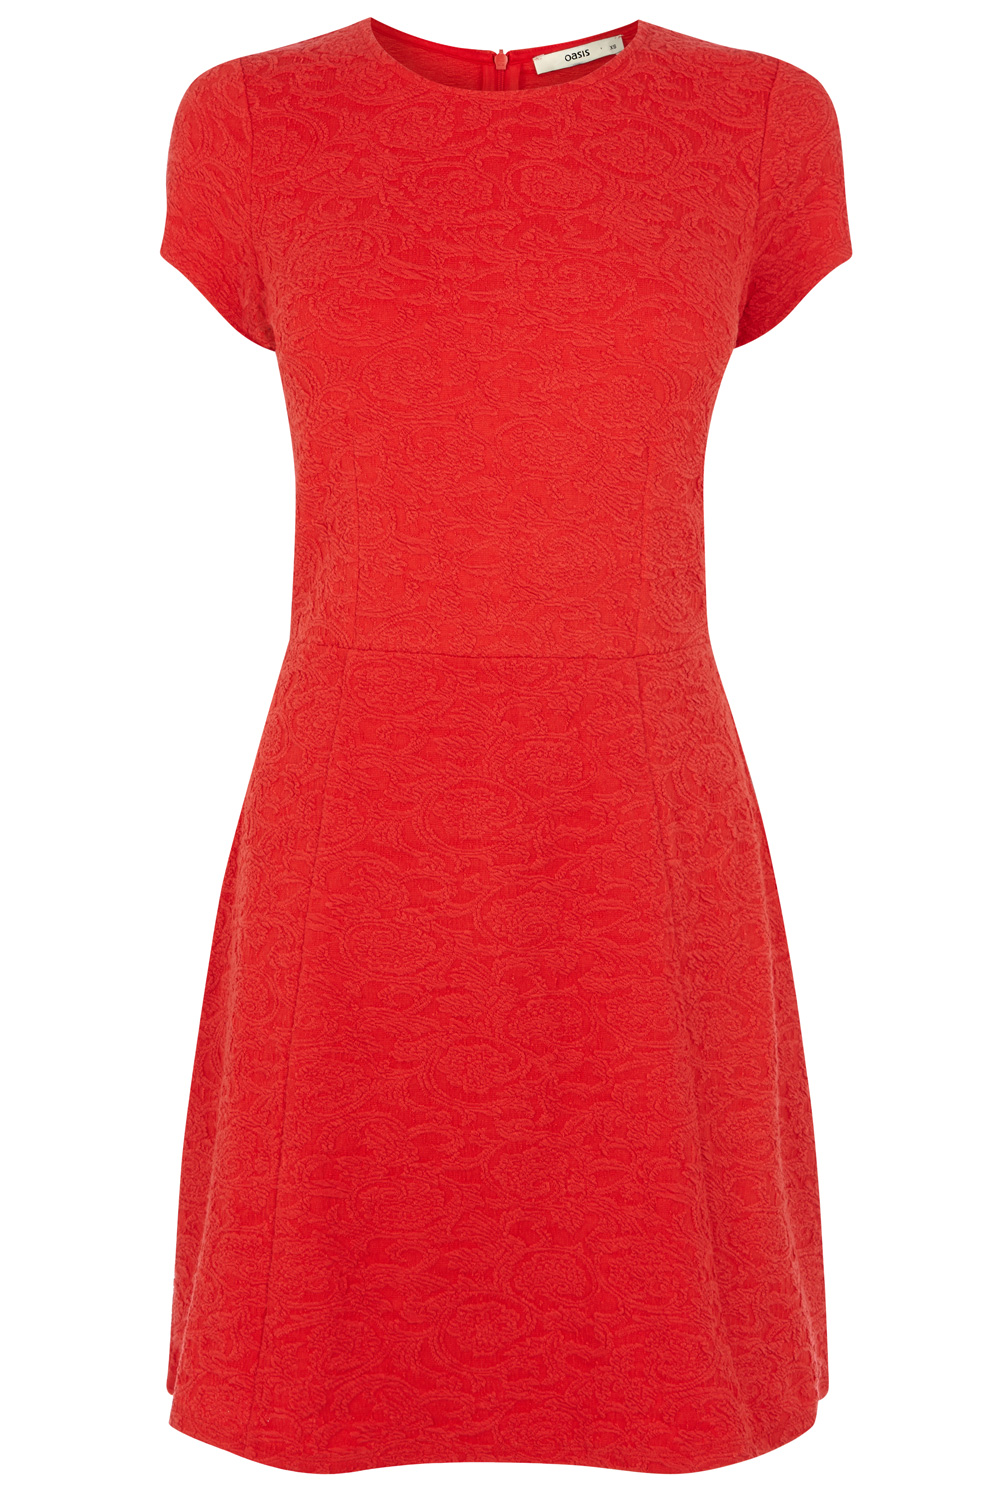 Textured Jacquard Skater Dress   Red   Oasis Stores